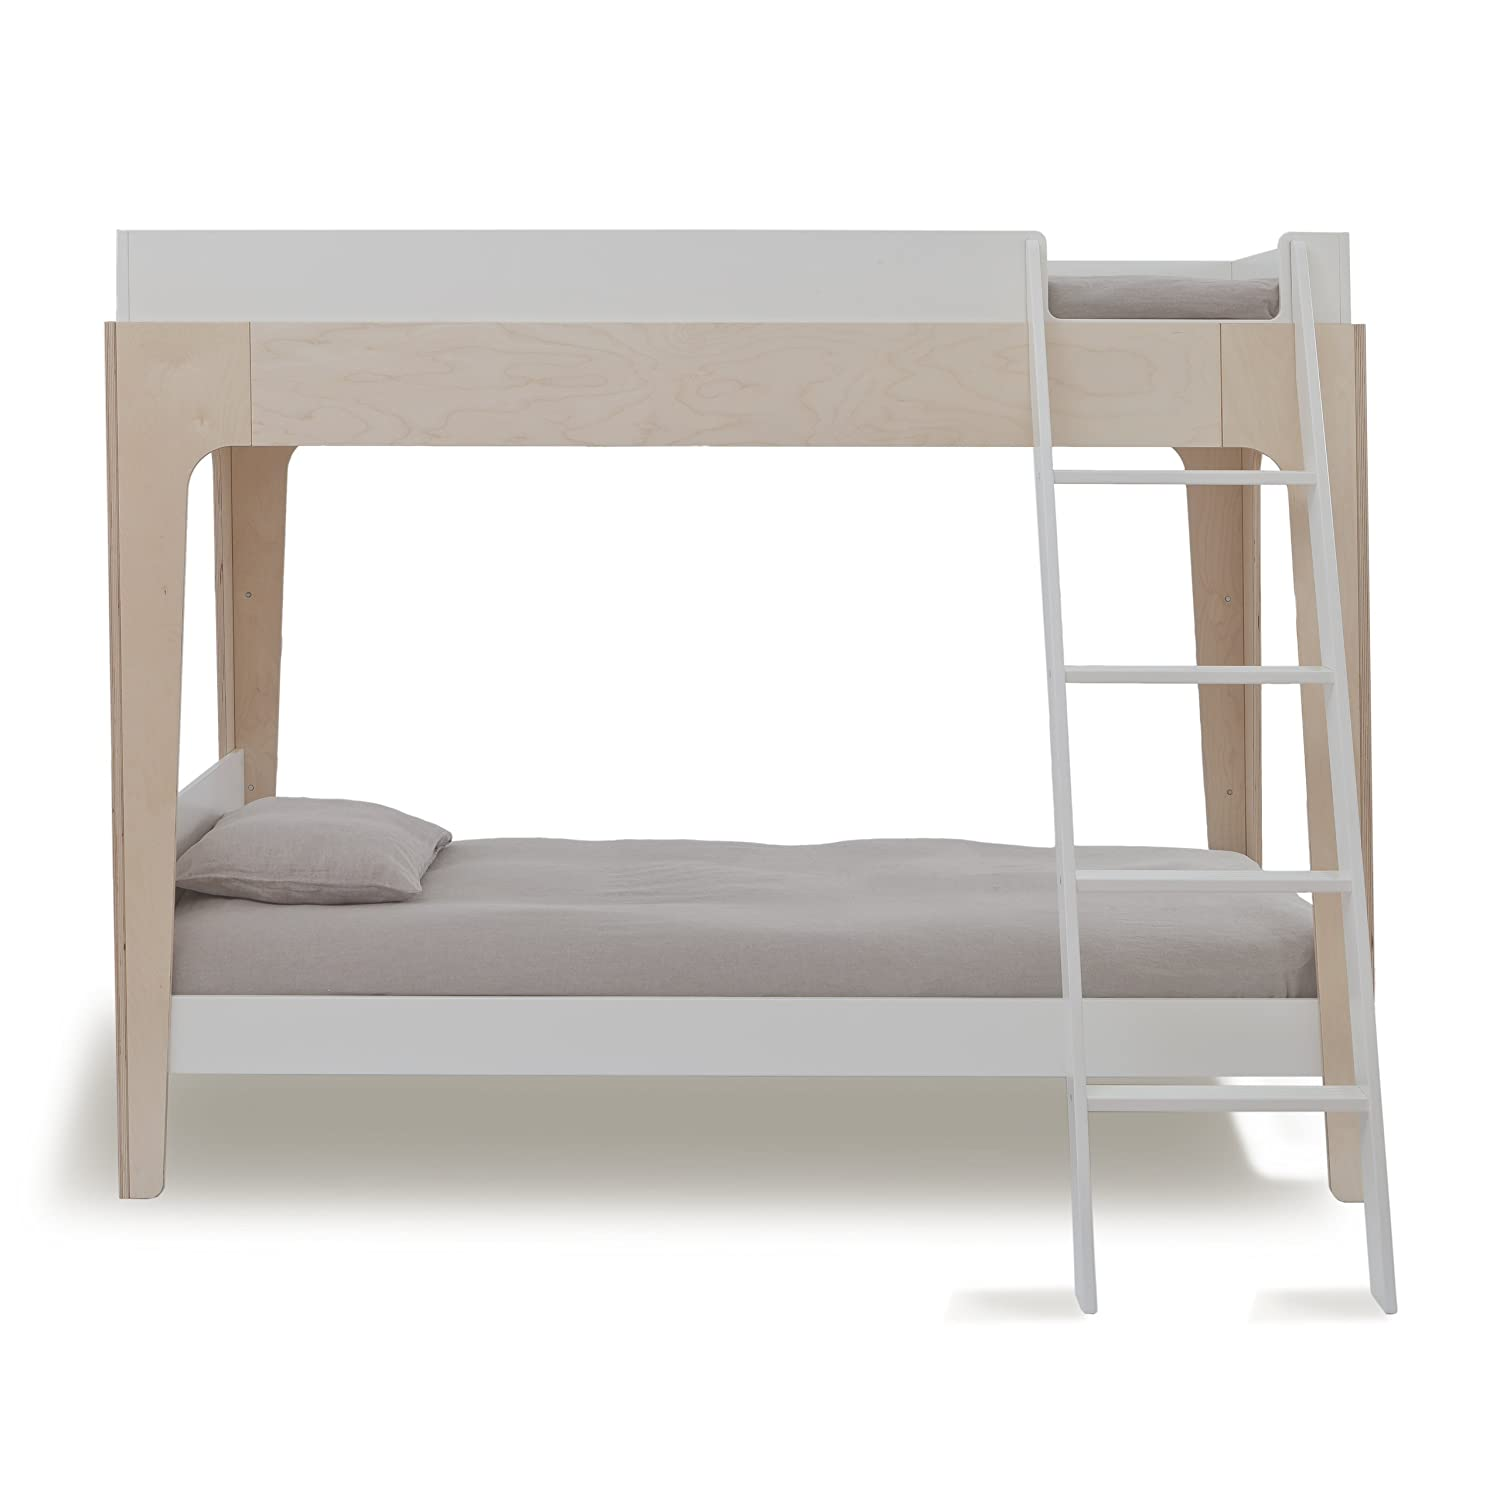 amazoncom oeuf perch bunk bed  birchwhite kitchen  dining -